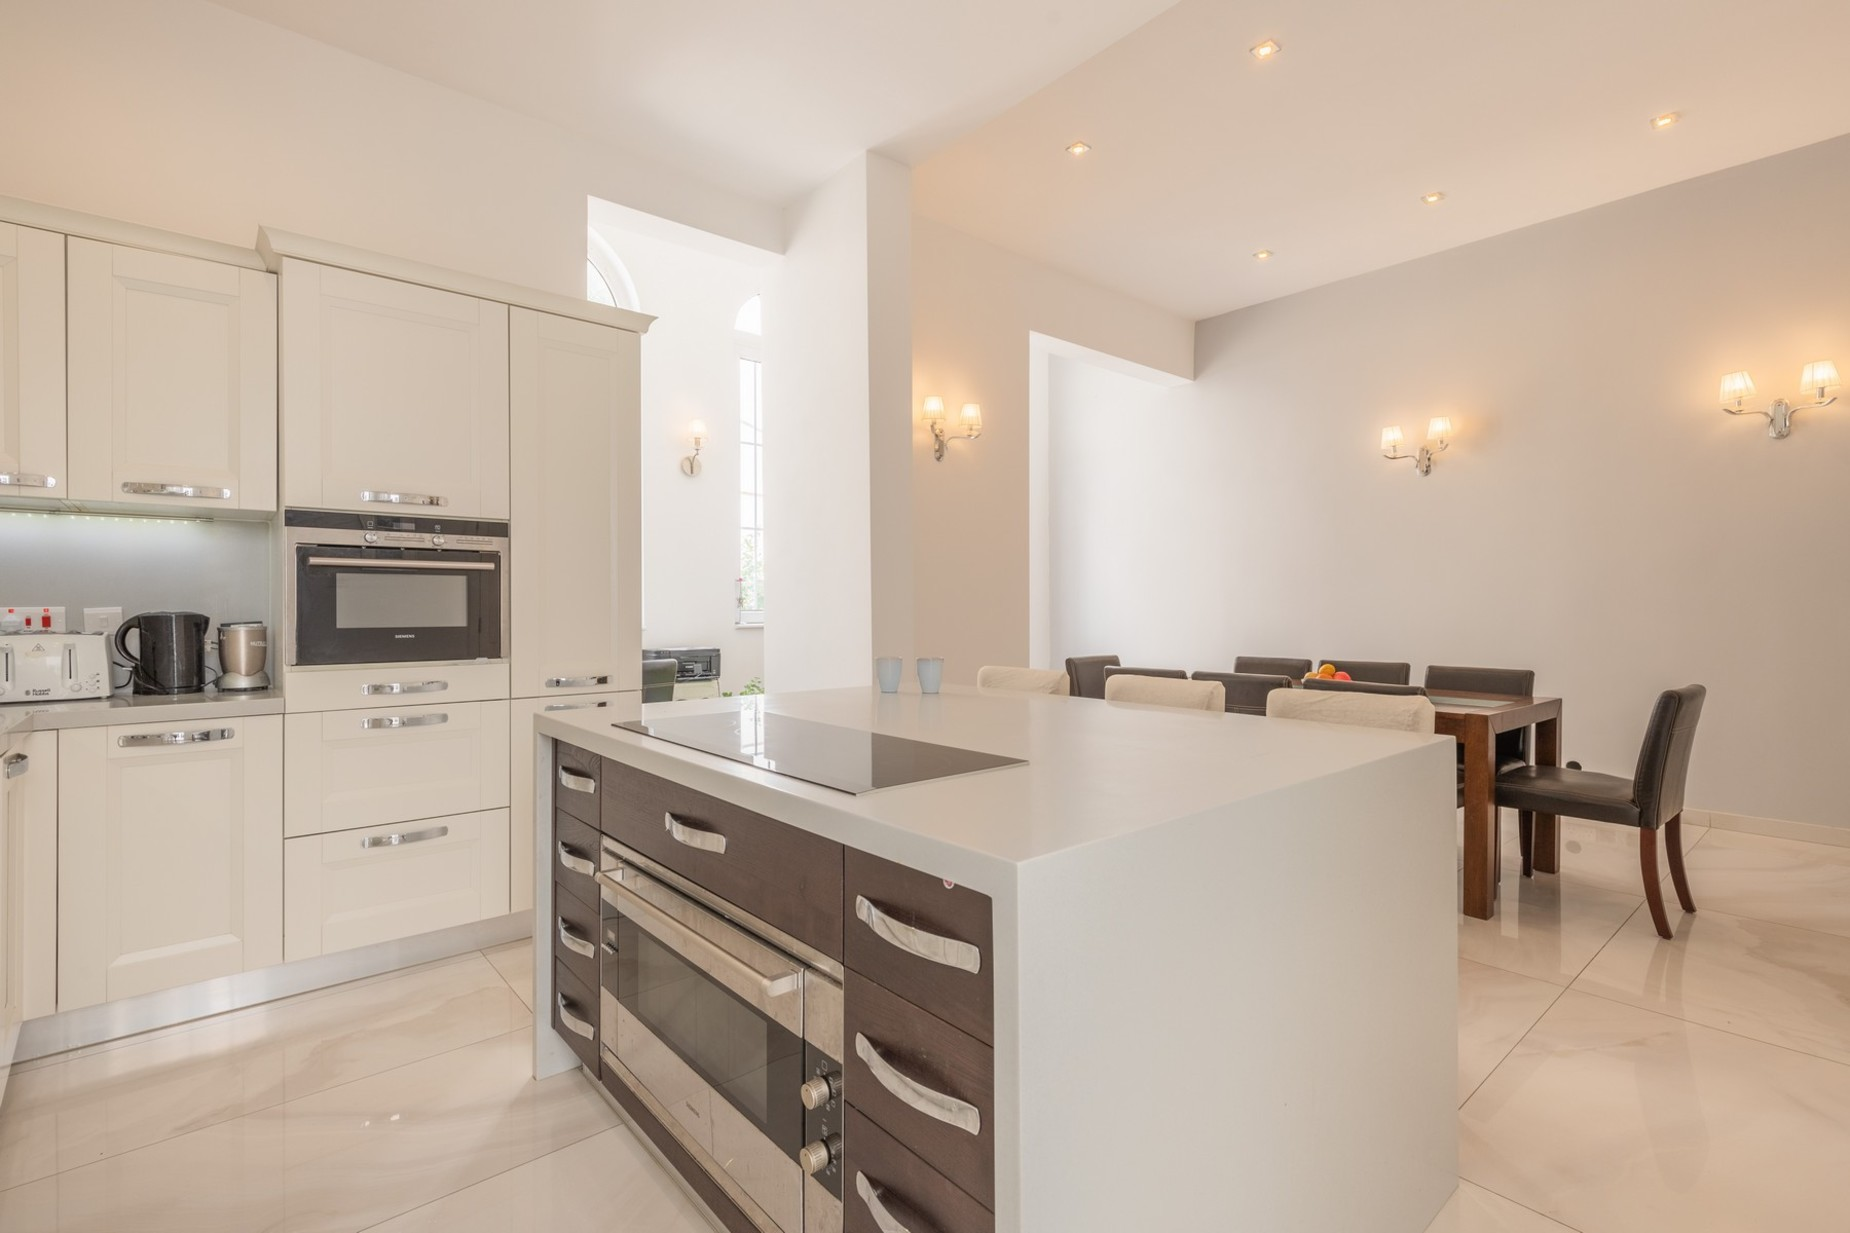 5 bed Town House For Rent in Sliema, Sliema - thumb 10